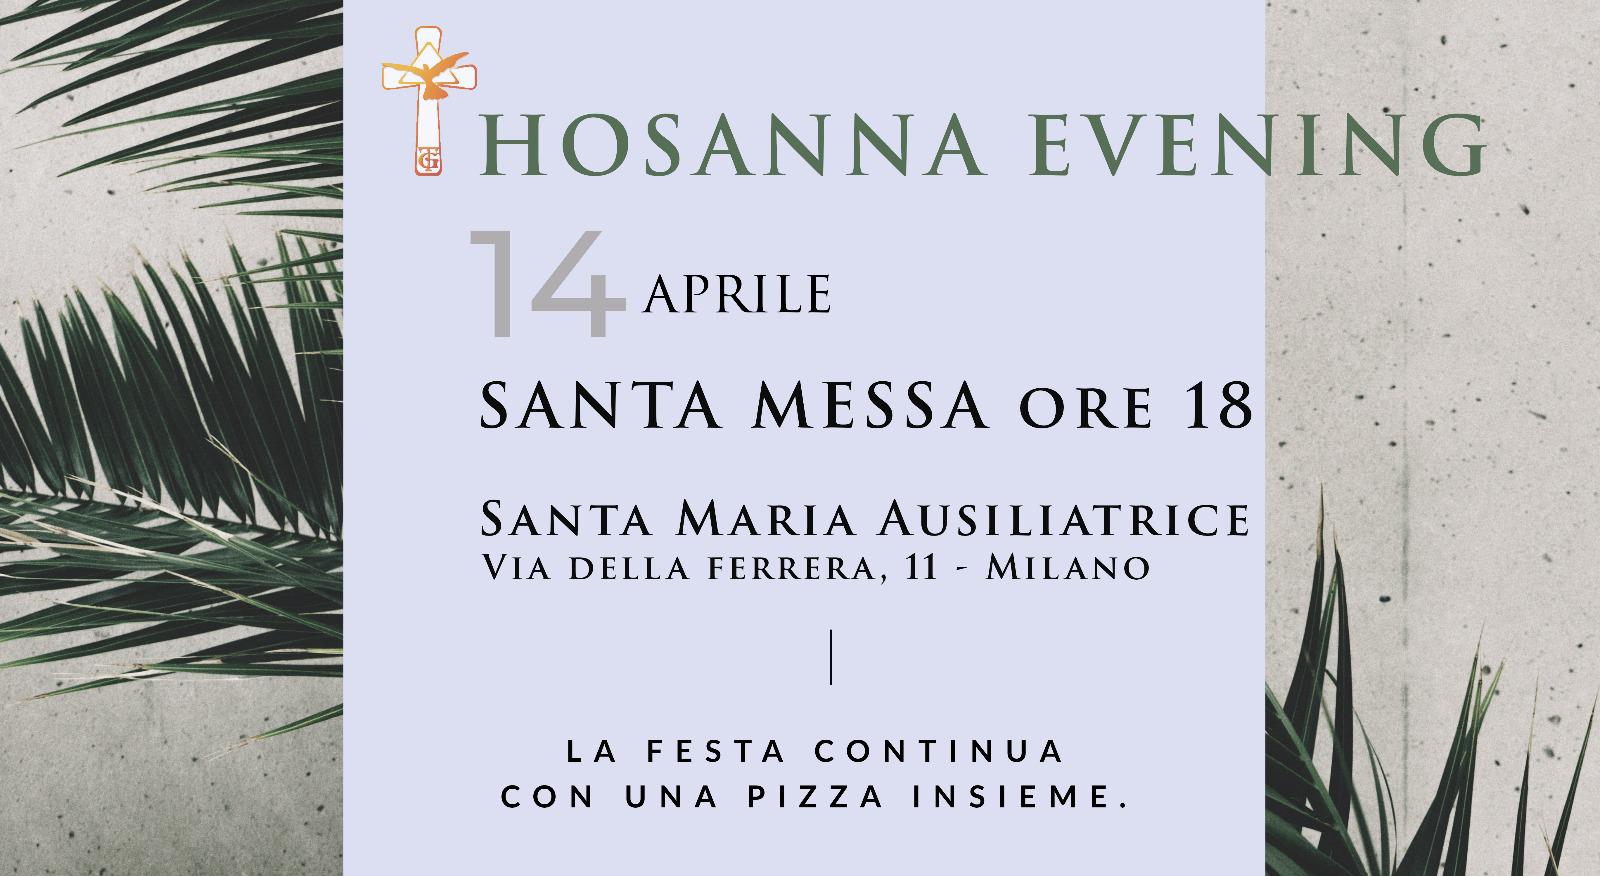 MILANO: HOSANNA EVENING